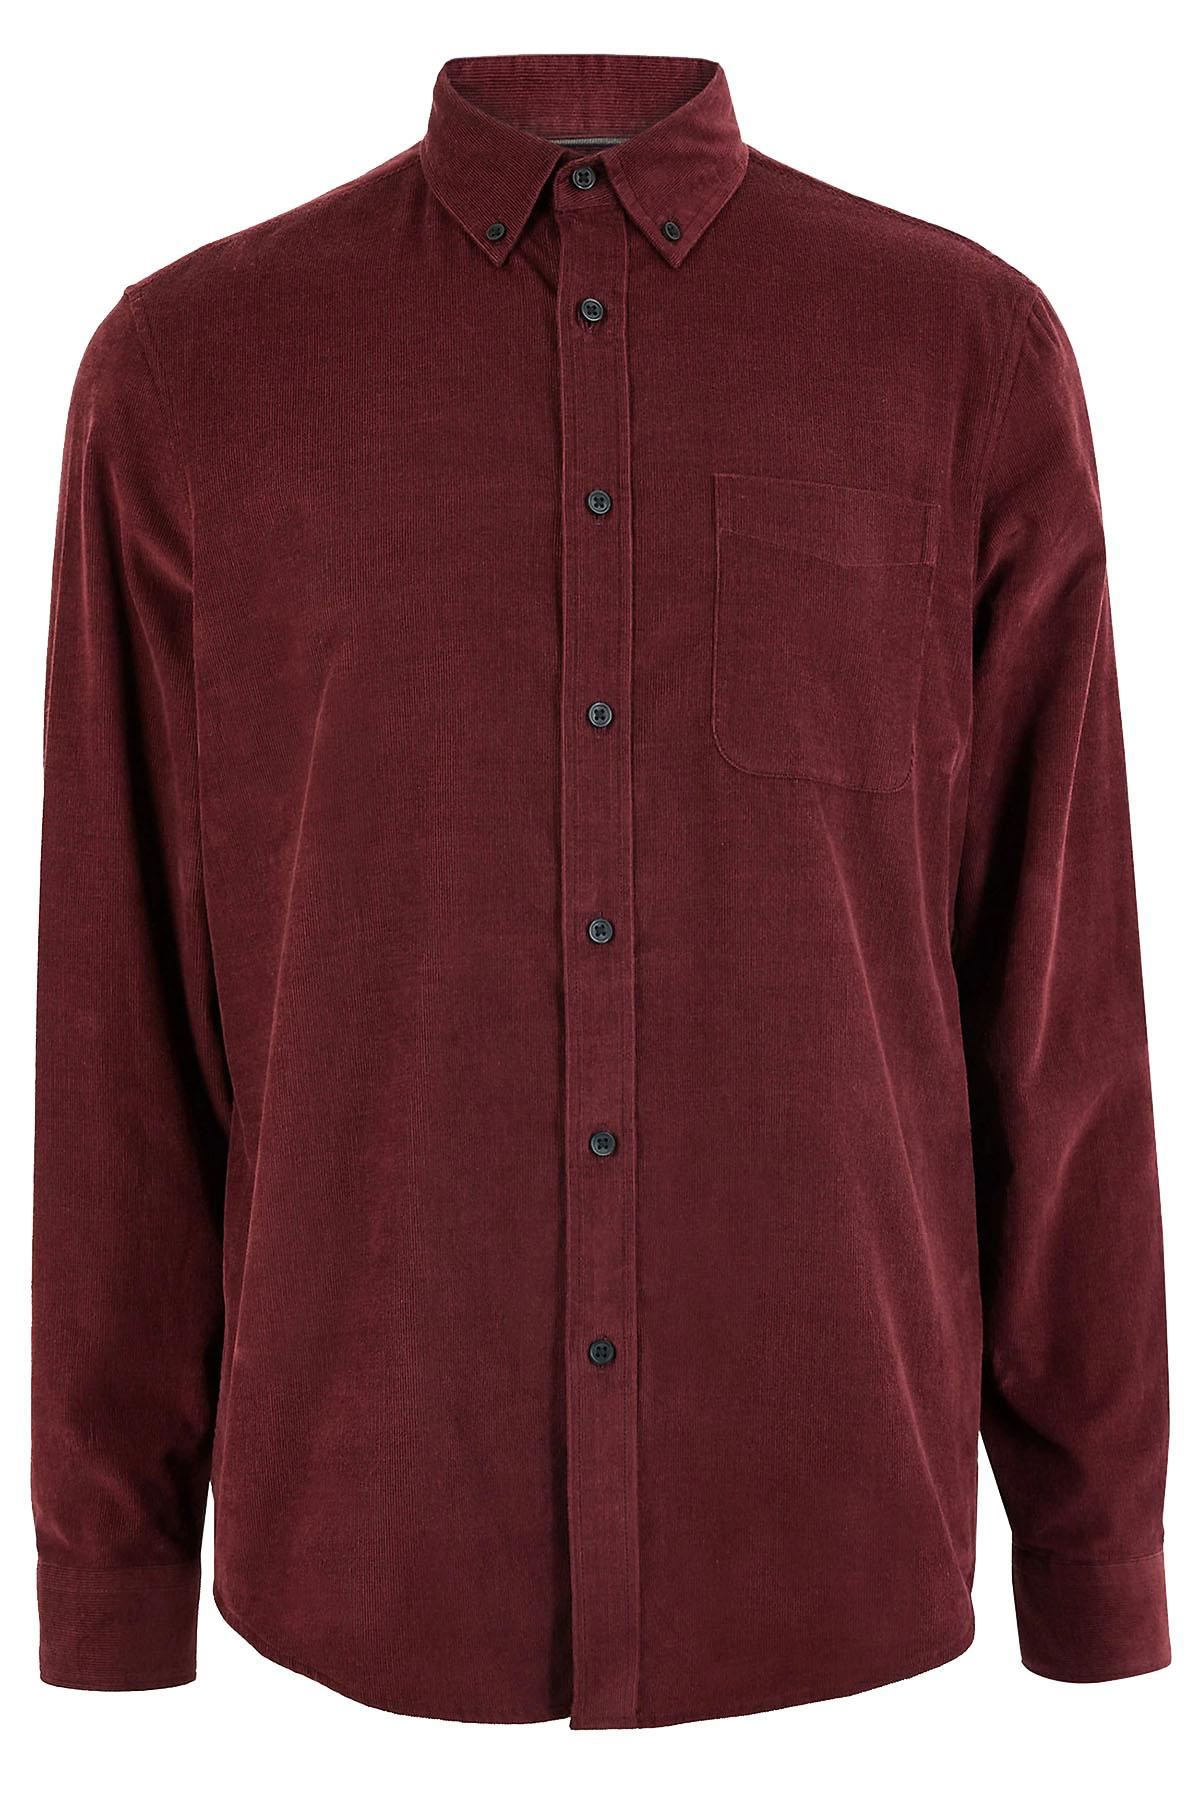 M-amp-S-Marks-and-Spencer-Mens-Fine-Cotton-Corduroy-Needlecord-Shirt-XL-4XL thumbnail 15